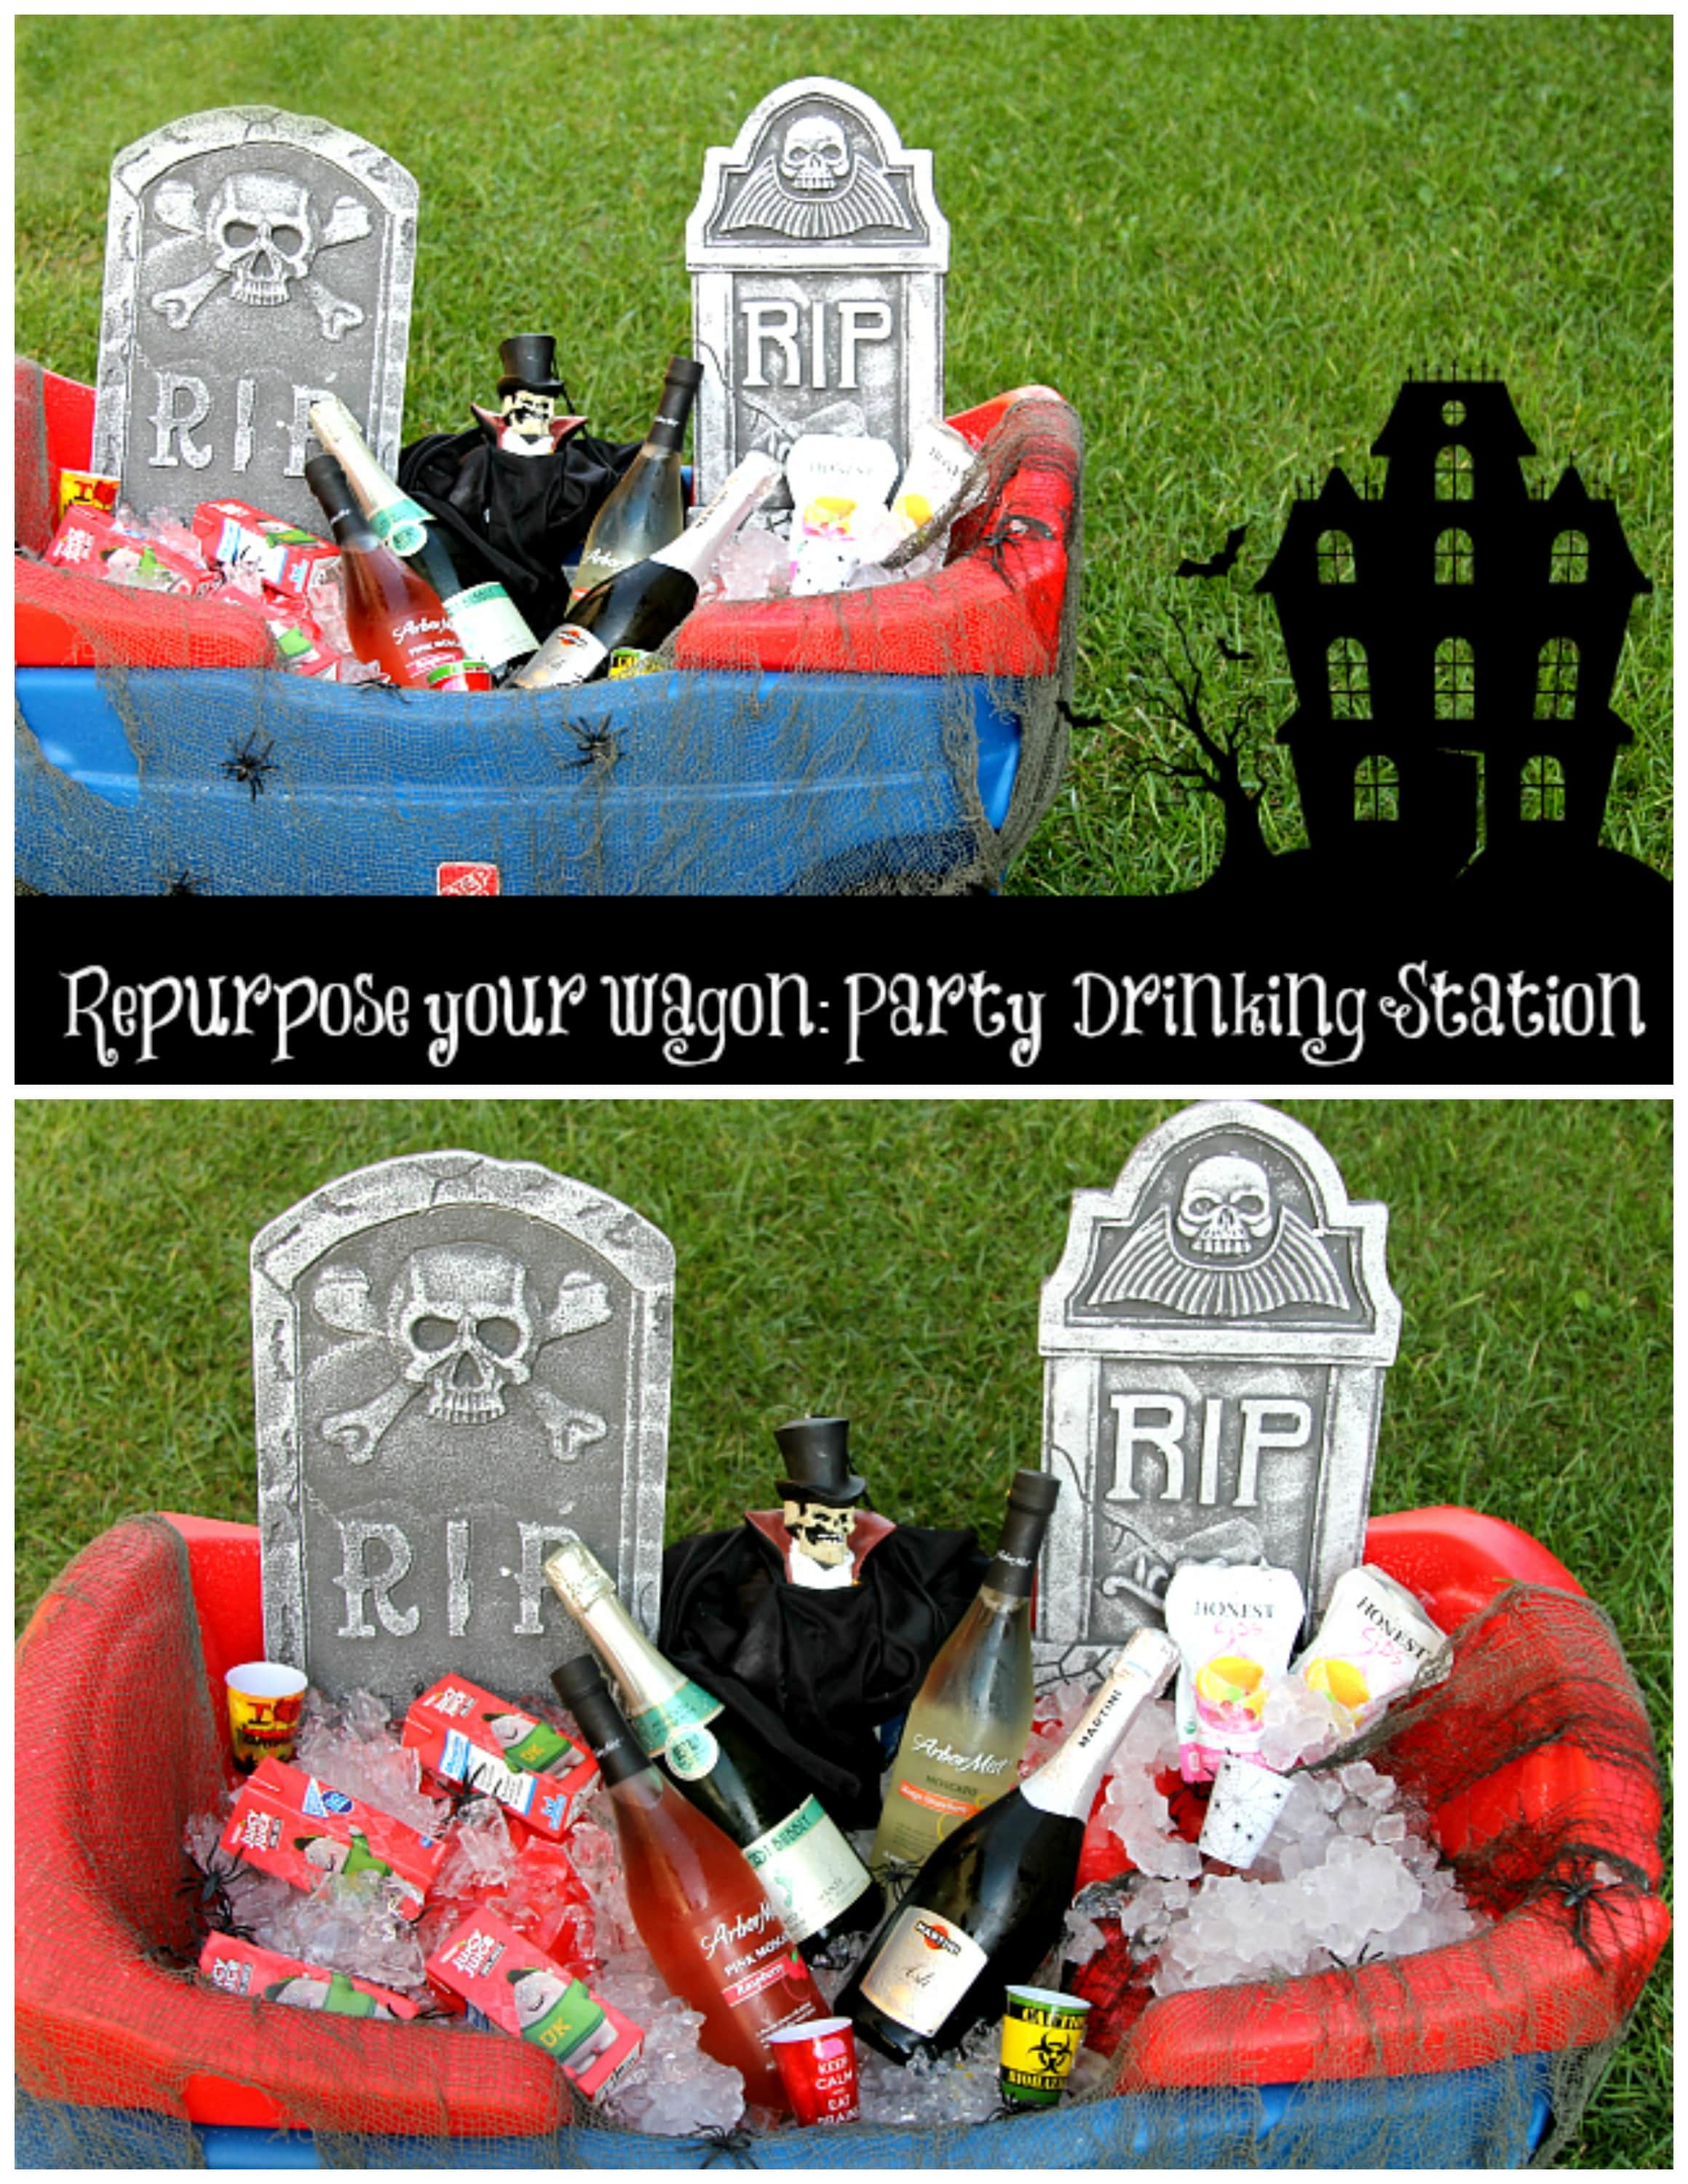 Halloween Party Drinking Station | Halloween Hack | Re-purpose Wagon this Fall